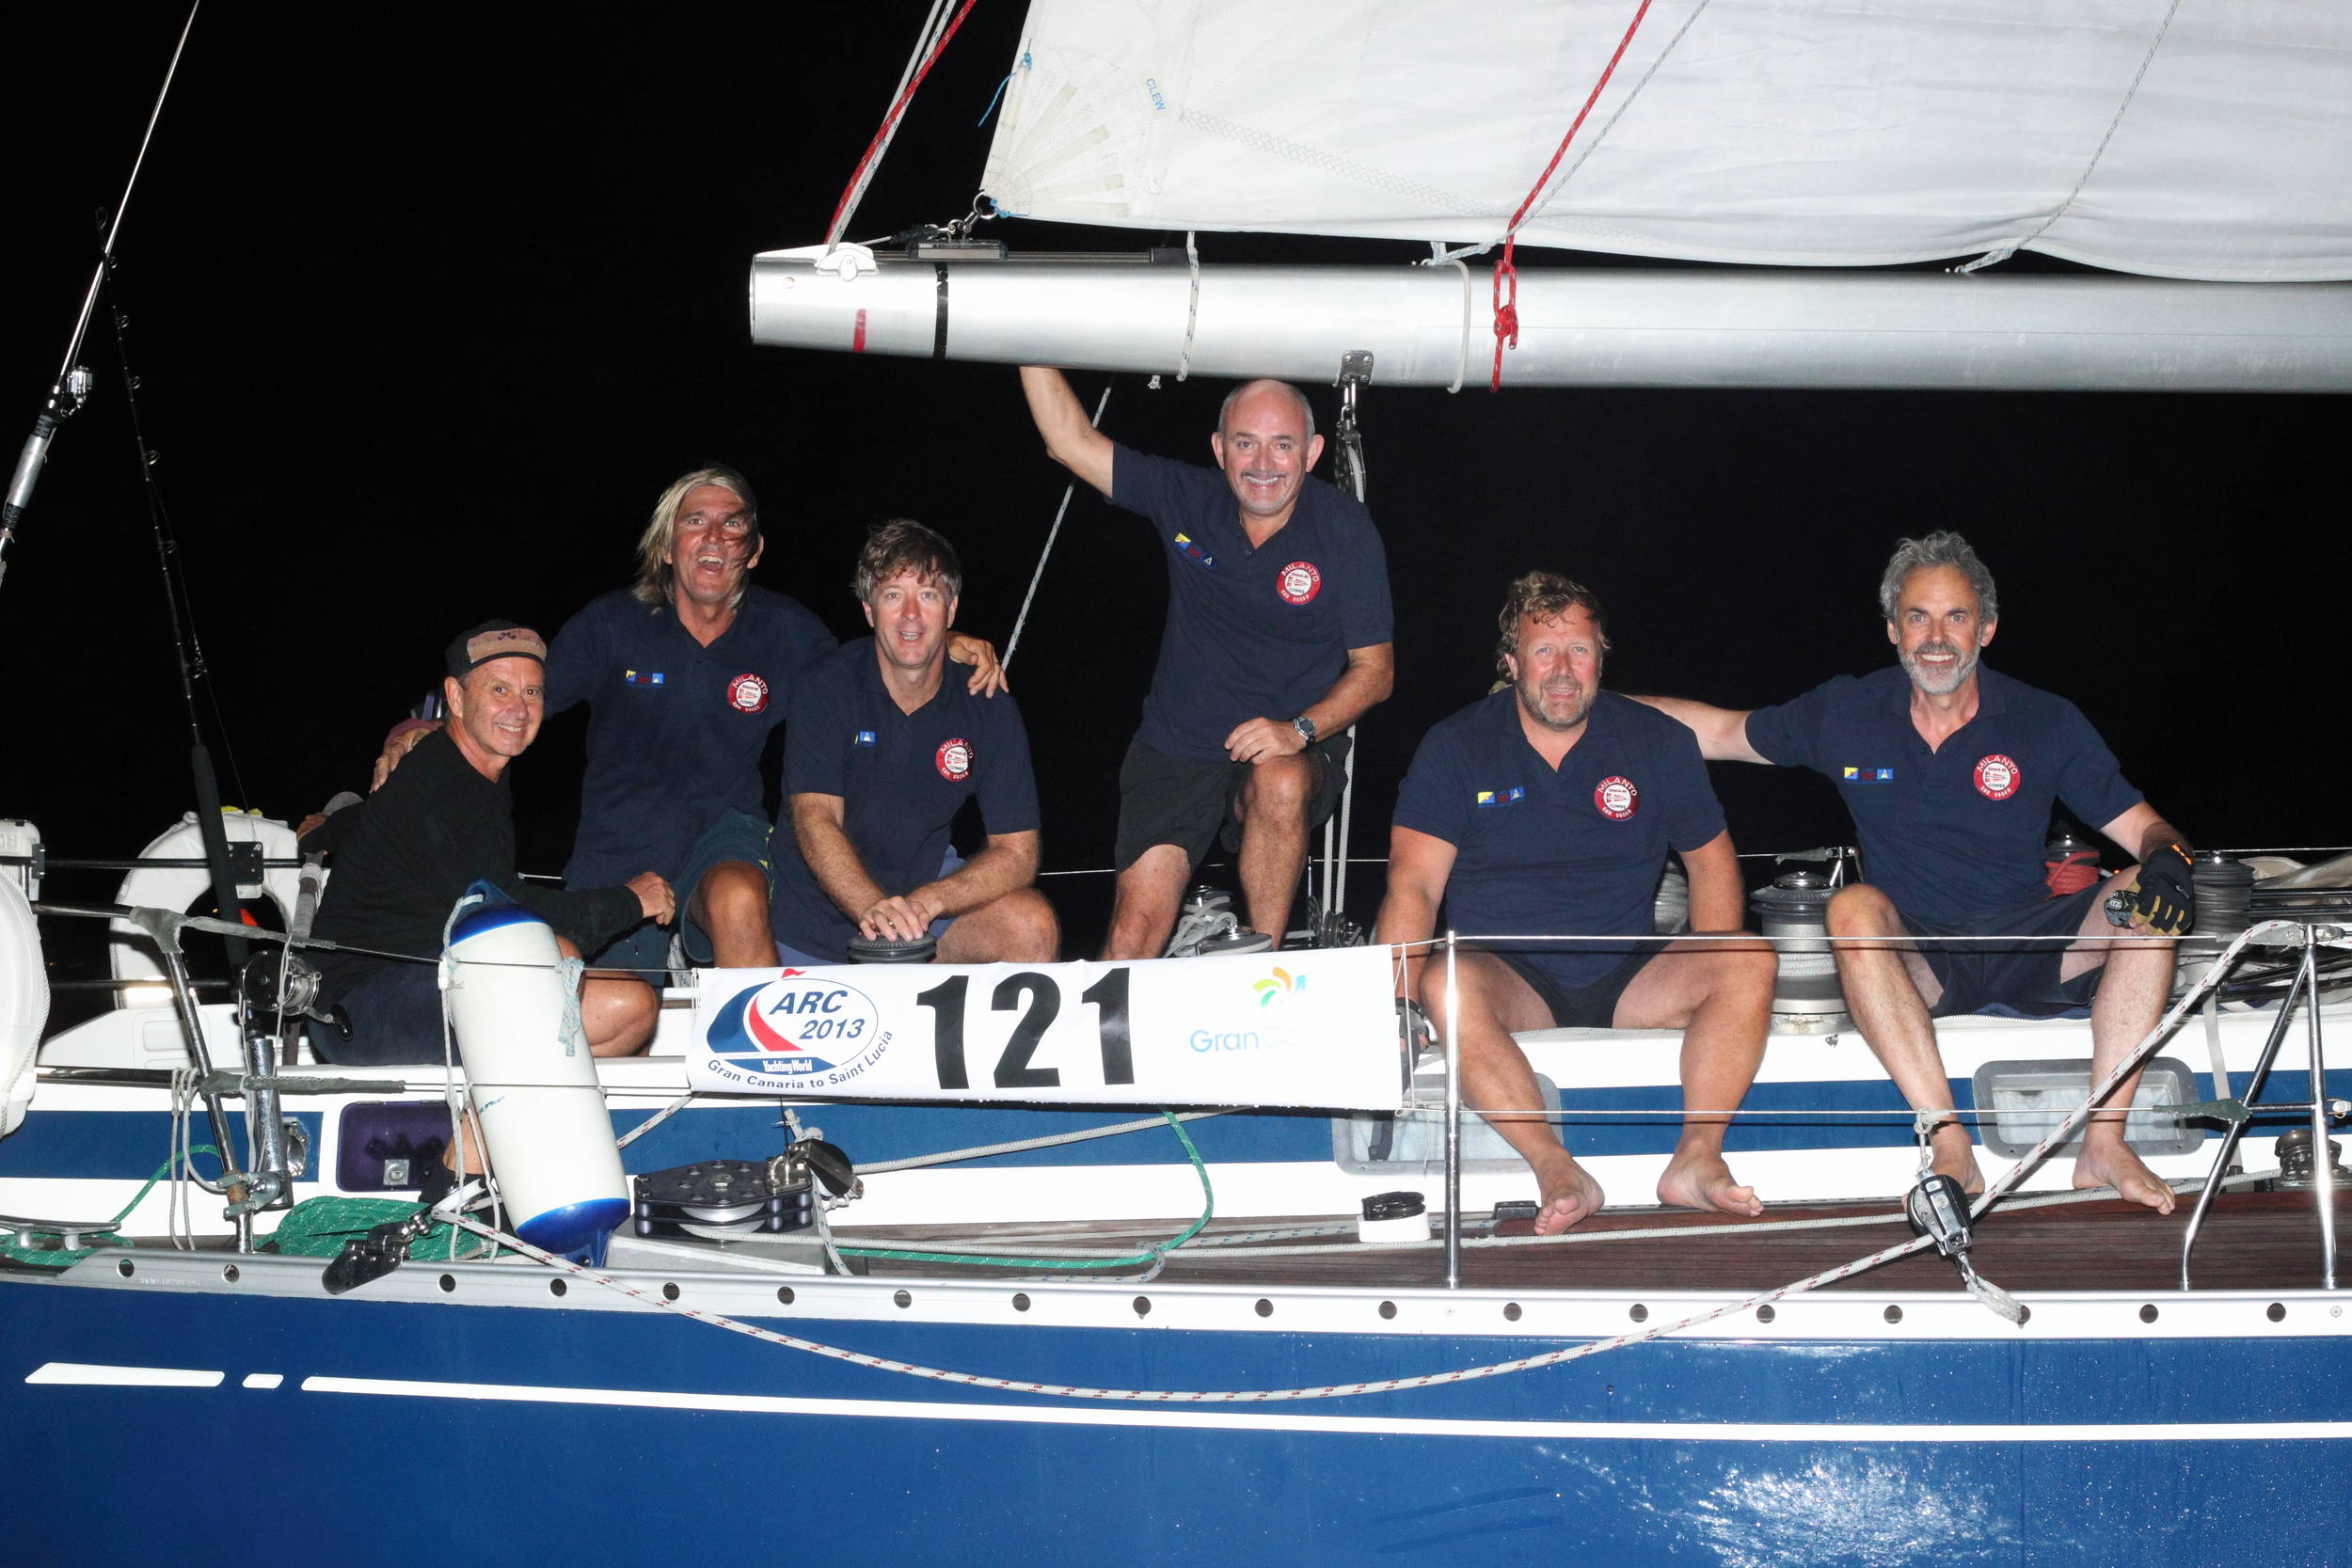 The 2013 crew, happy to have crossed the line in Rodney Bay